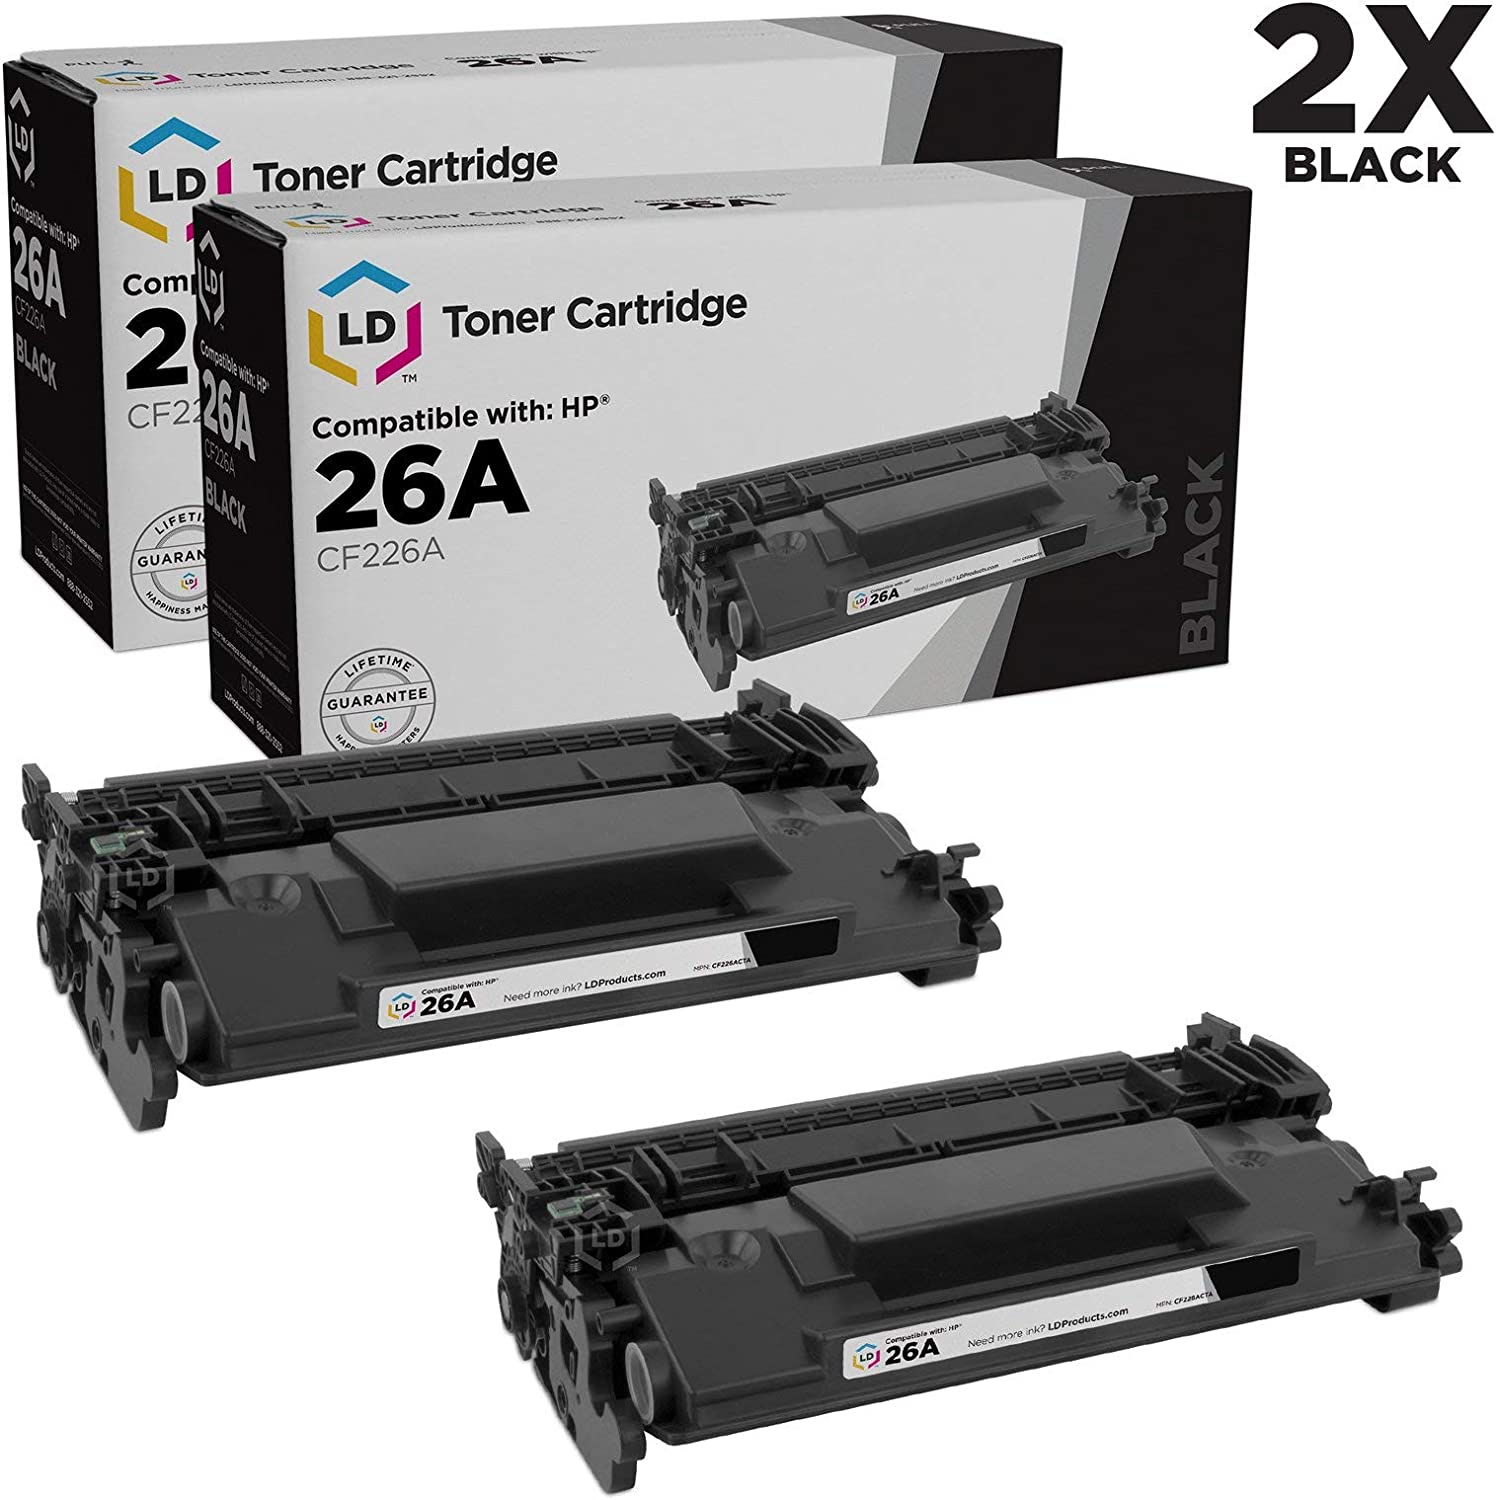 LD Compatible Toner Cartridge Replacement for HP 26A CF226A (Black, 2-Pack)